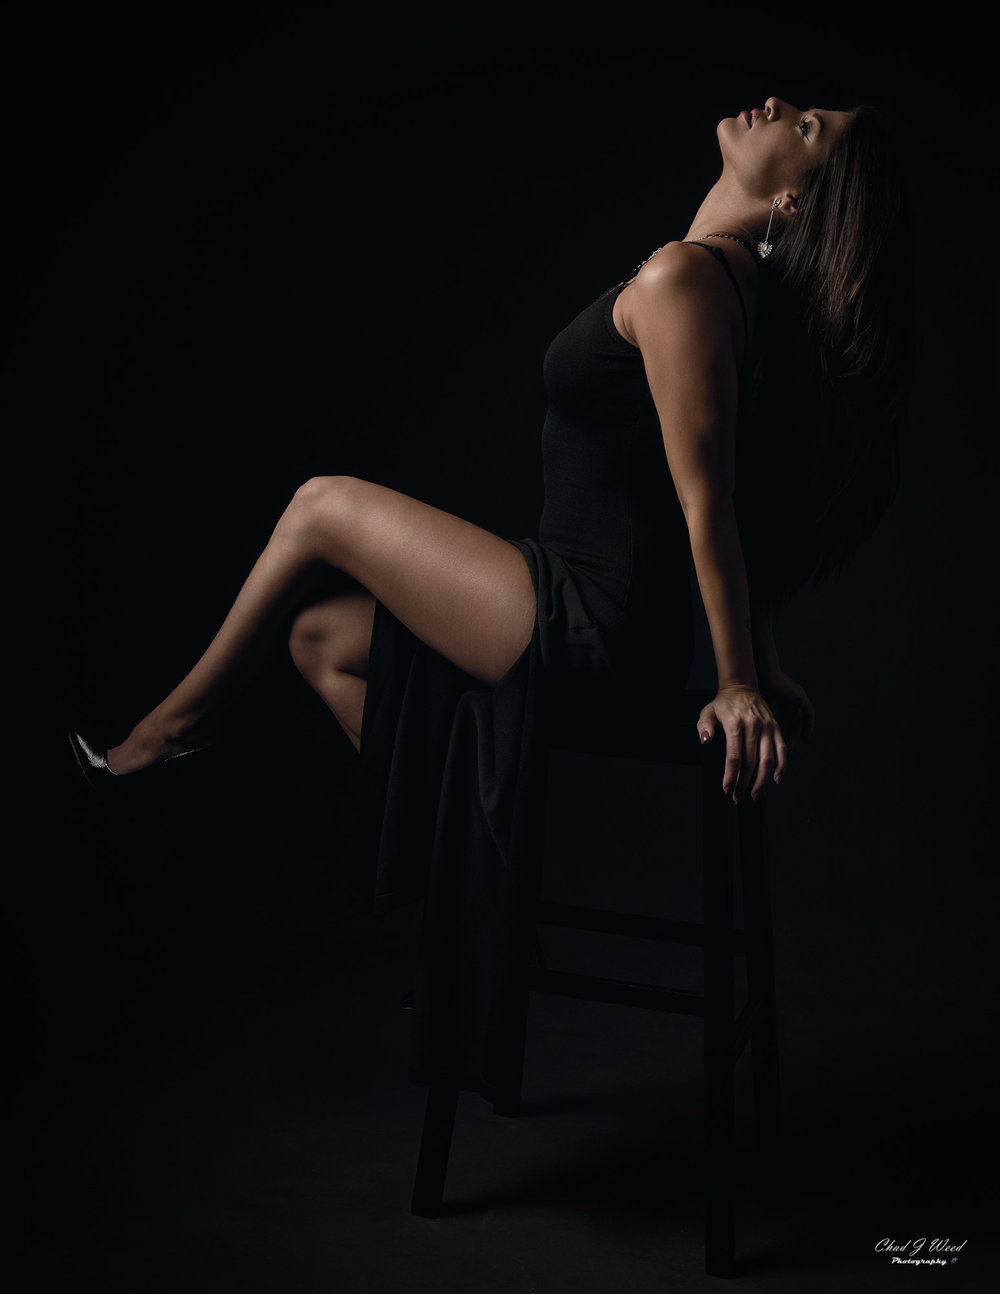 Arizona Fashion Photographer Chad Weed with Fitness Model Ashly - Black Dress 3